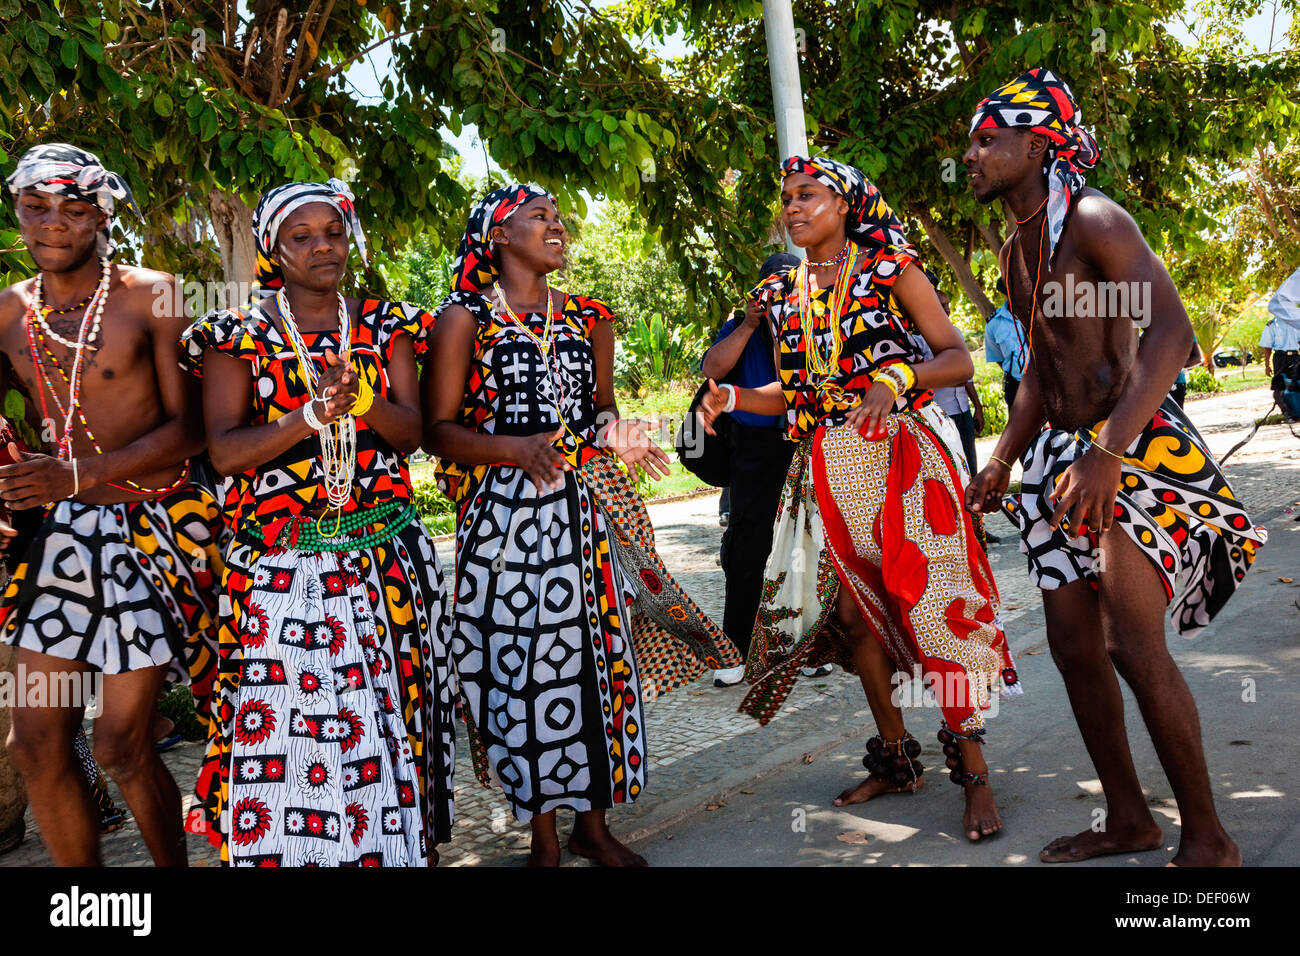 Africa, Angola, Benguela. Group dancing in traditional dress. - Stock Image